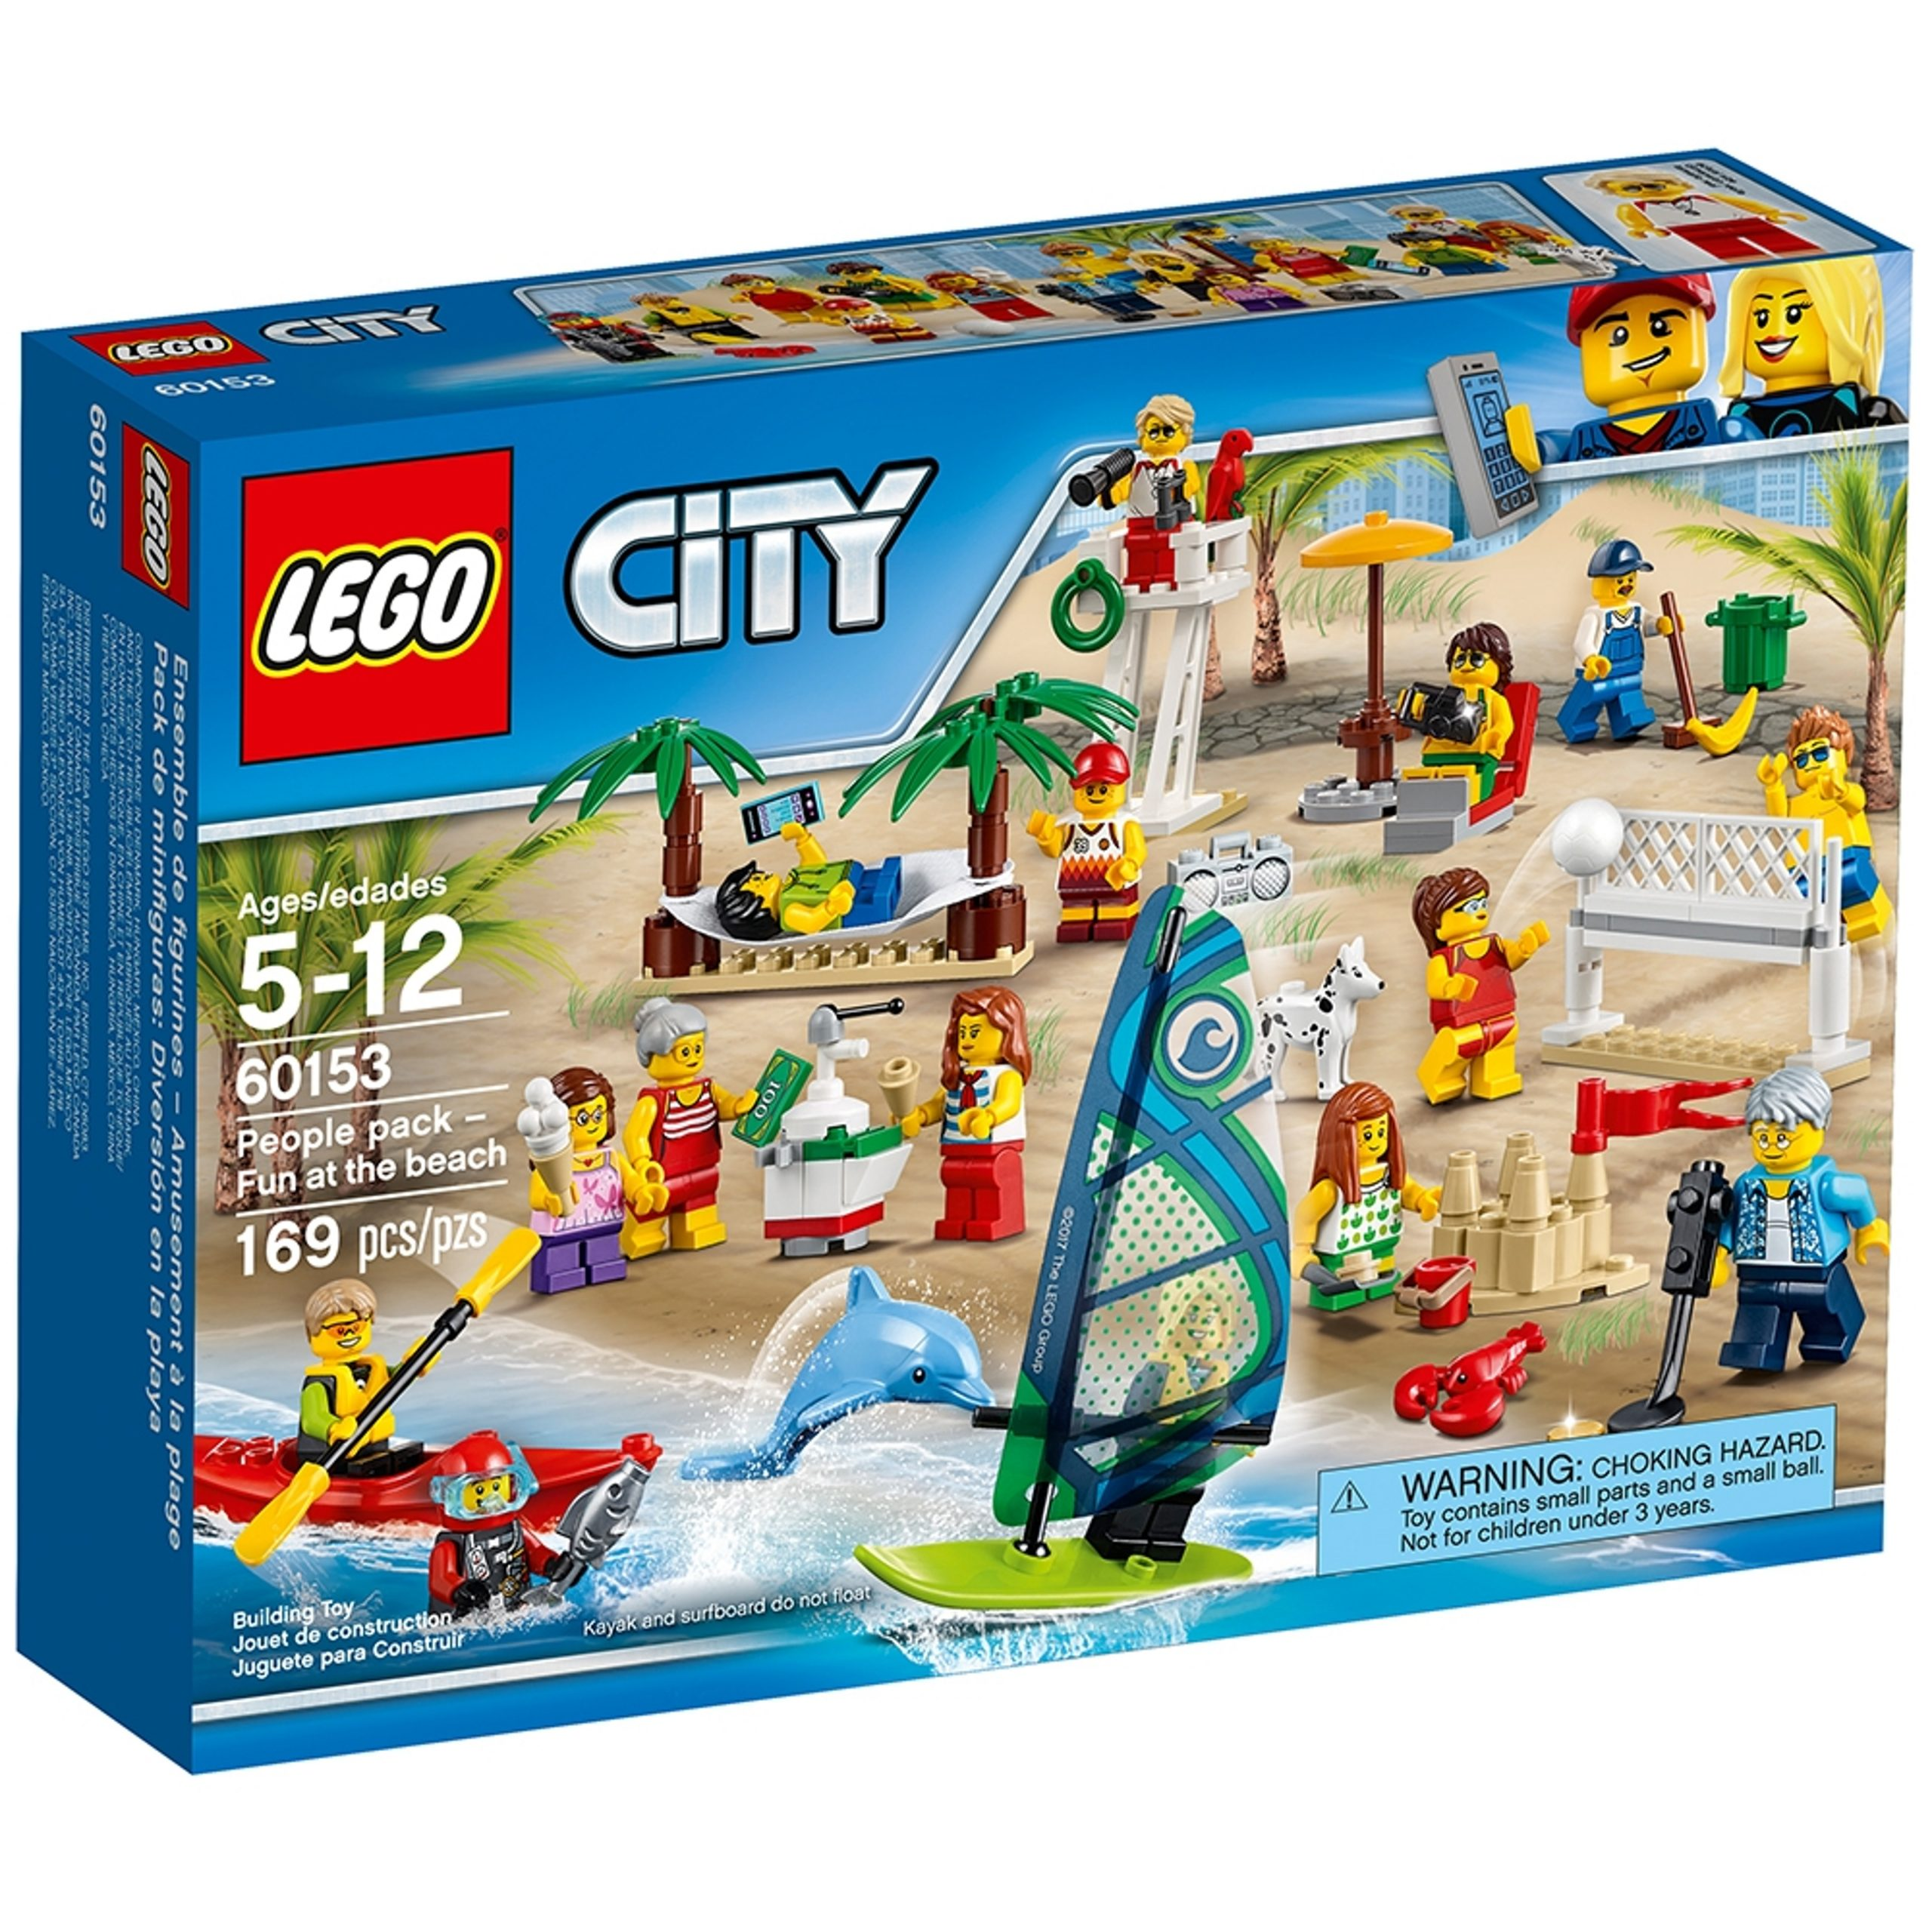 lego 60153 people pack divertimento in spiaggia scaled